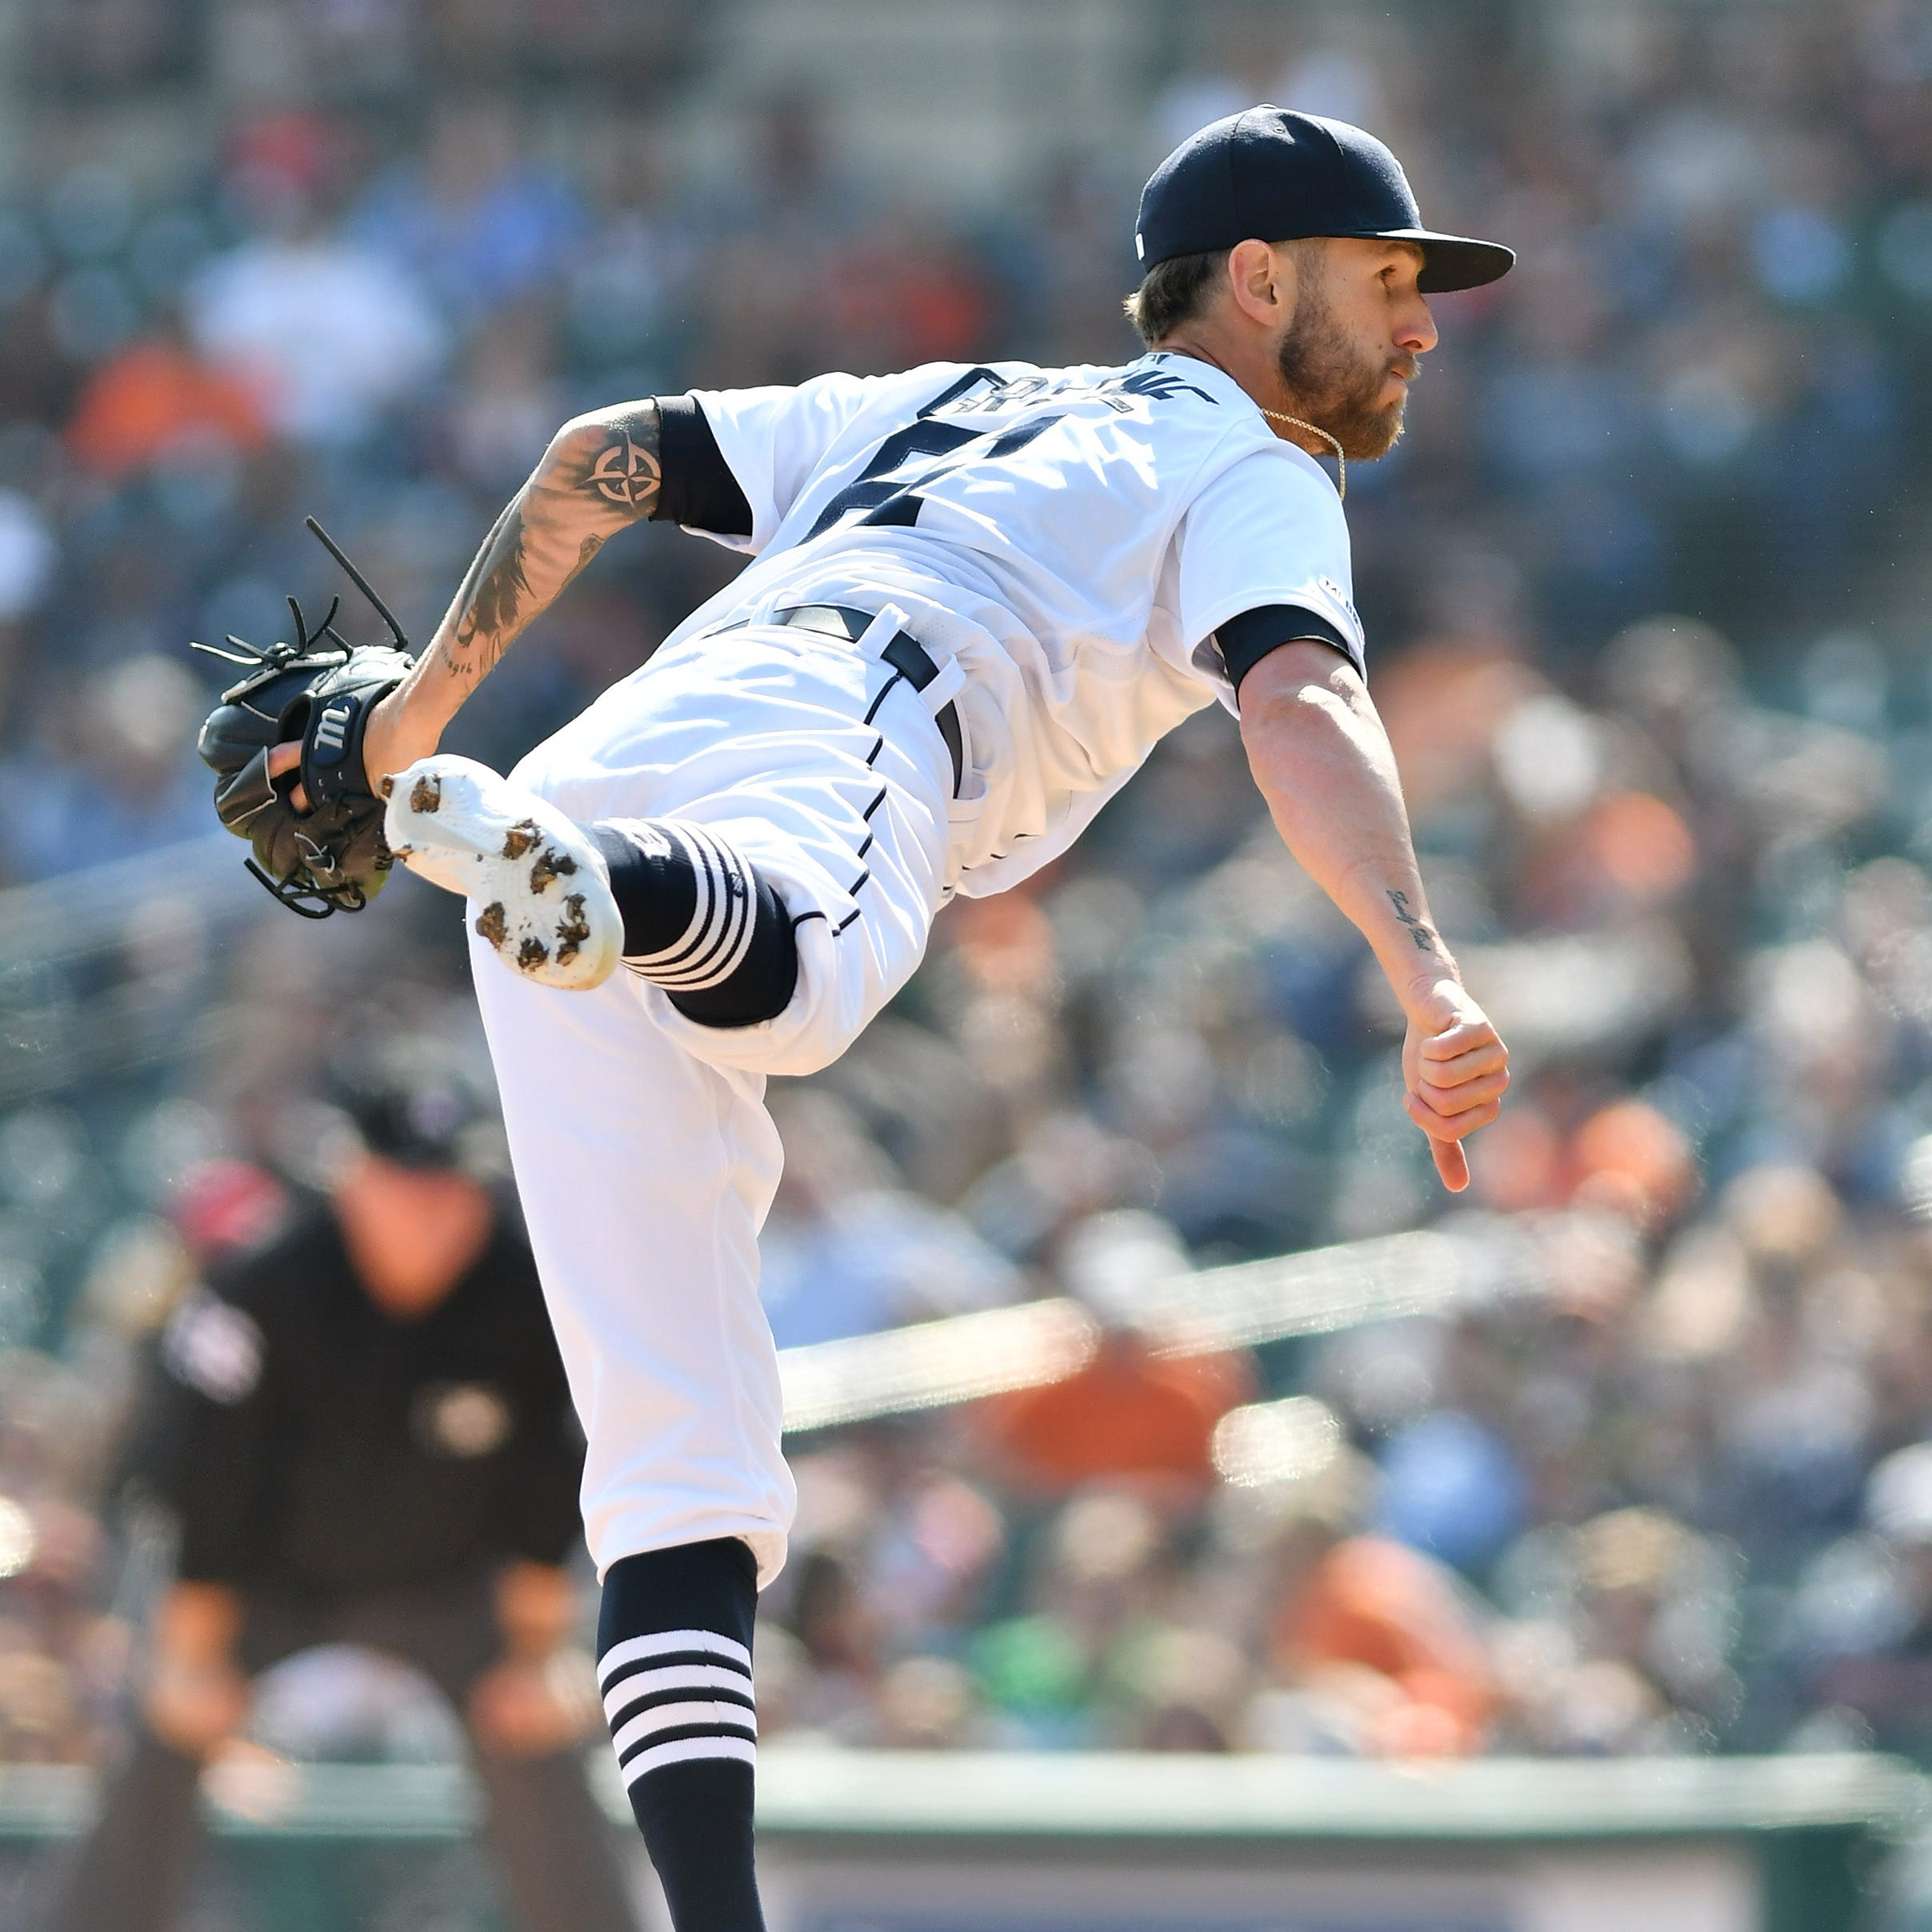 Tigers bullpen bosses Greene, Jimenez have bond formed by strife, empathy